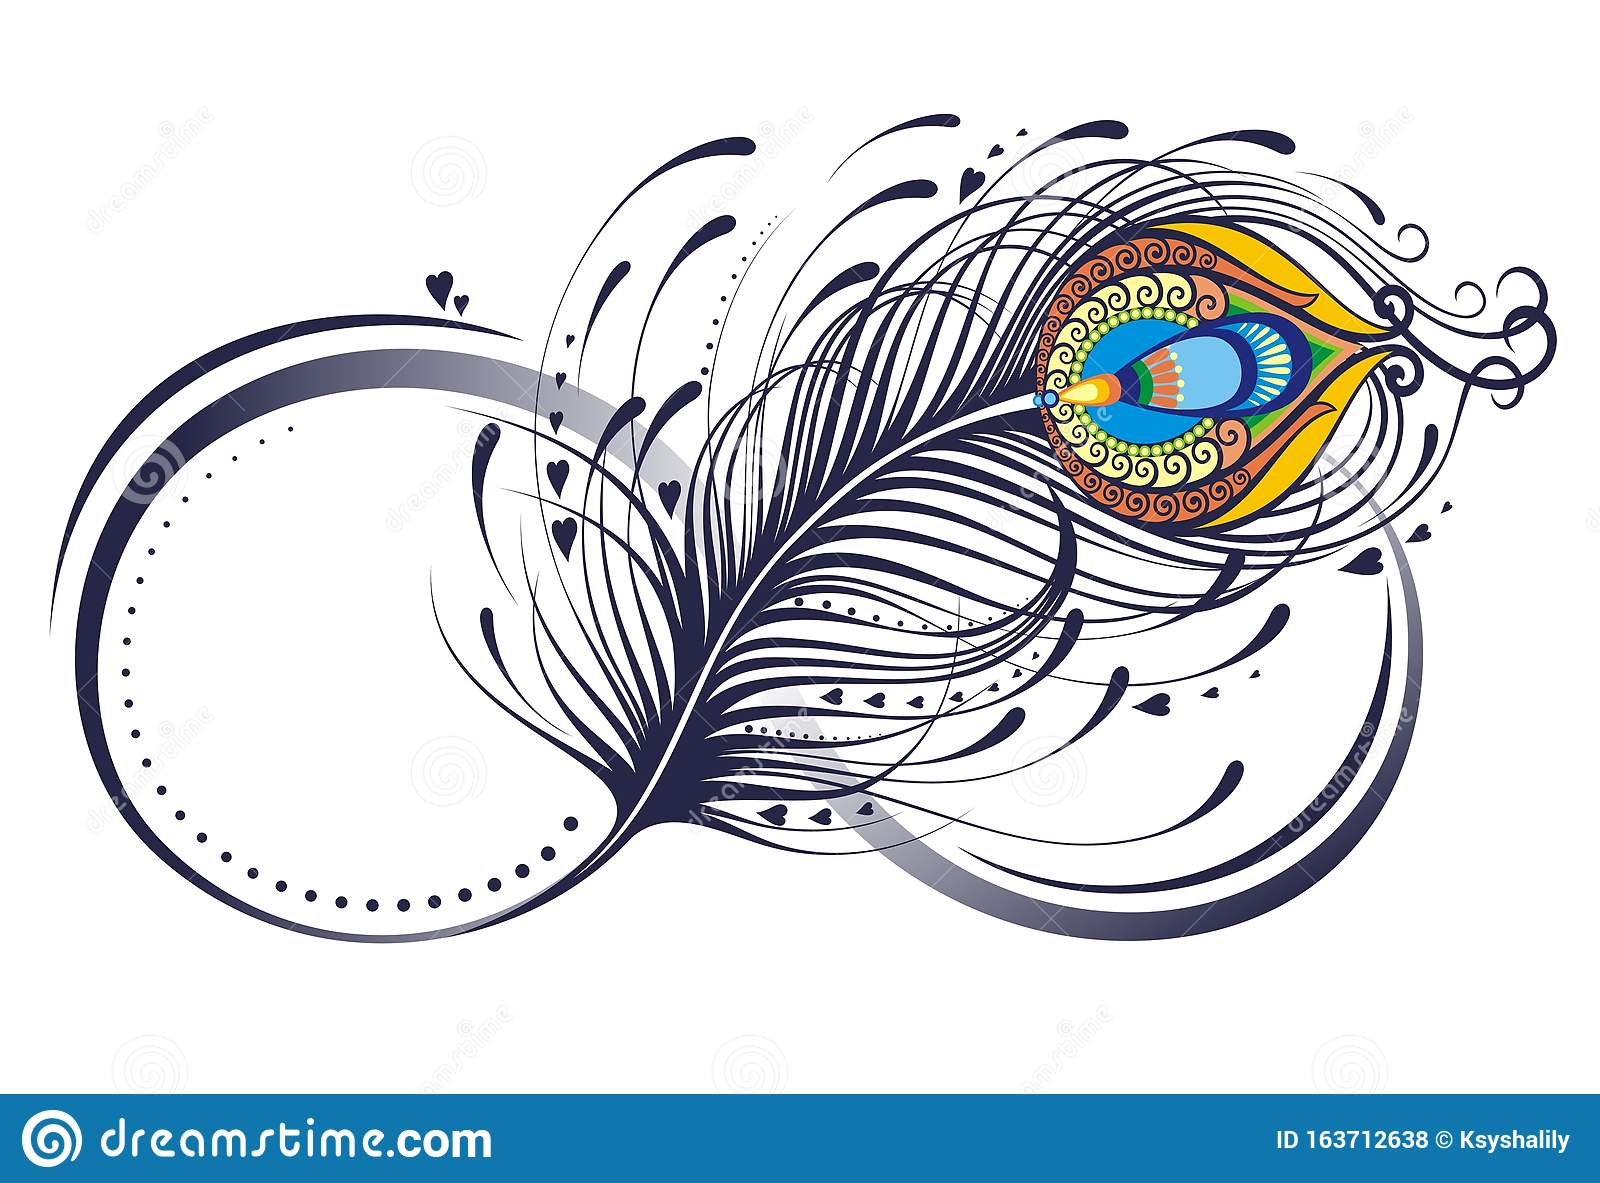 stylized symbol of infinitywith peacock feather vector element for your sketch stock vector illustration of tropical tattoo 163712638 https www dreamstime com symbol infinity peacock feather decorative composition hearts feather vector element your sketch tattoo stylized image163712638